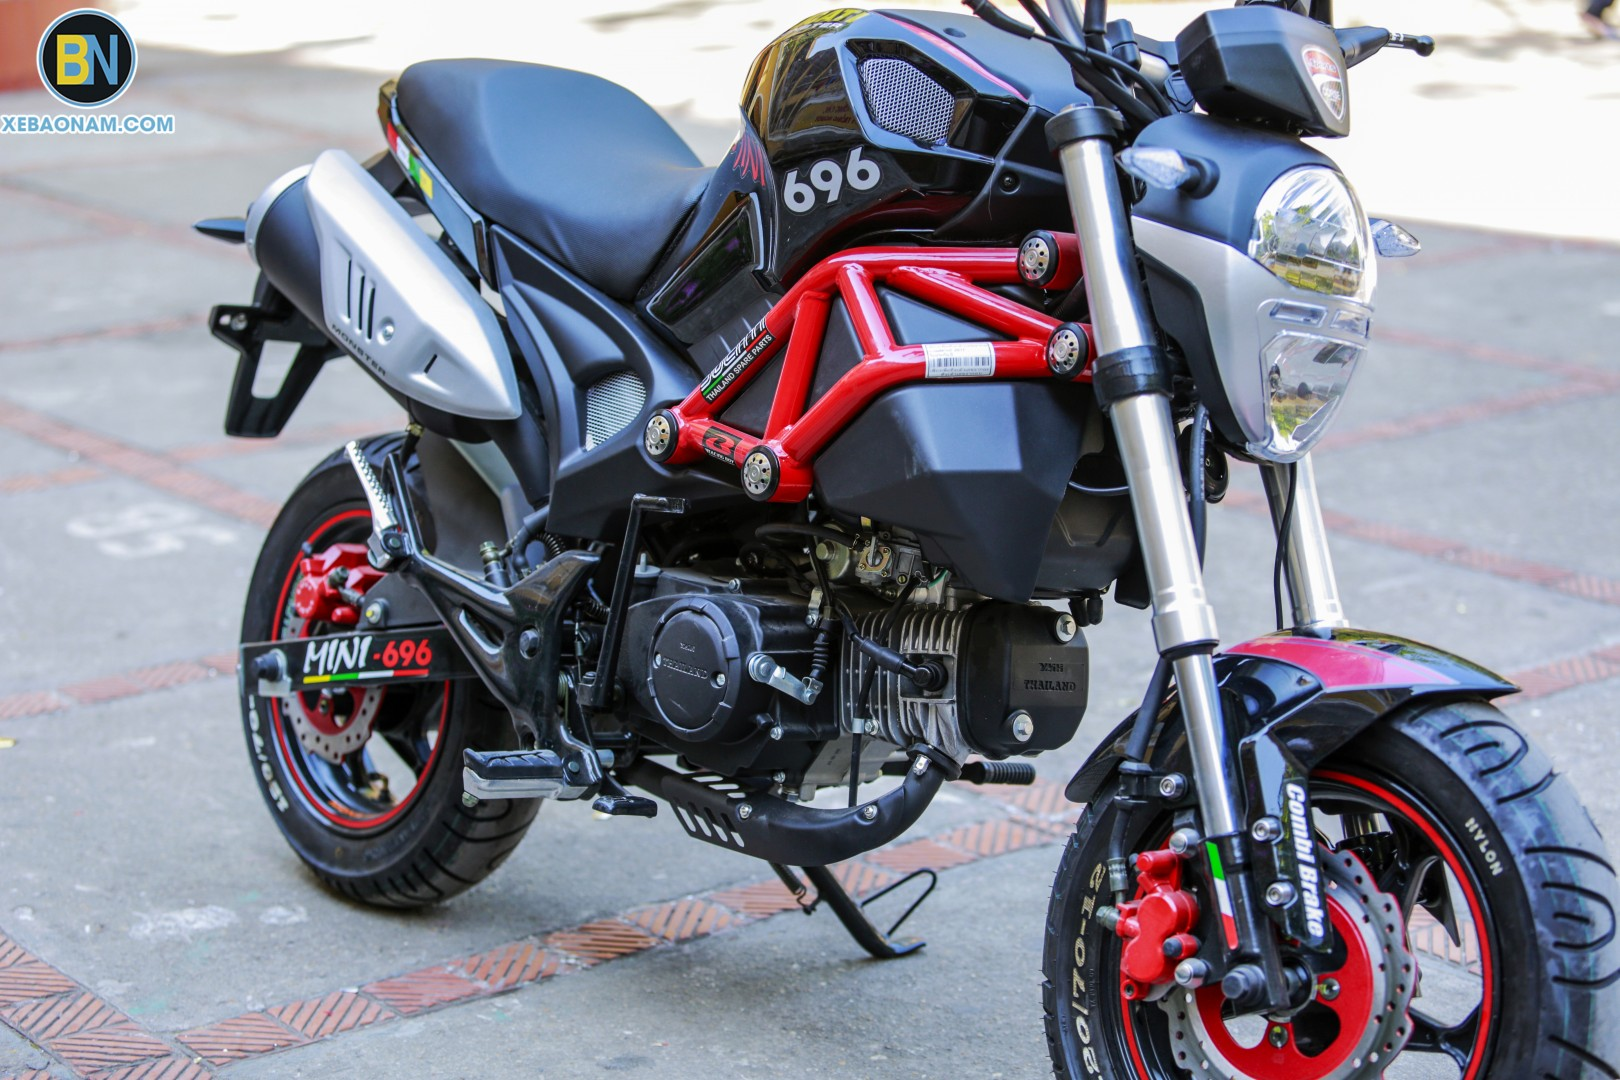 xe-may-ducati-mini-monster-110-xebaonam(5)